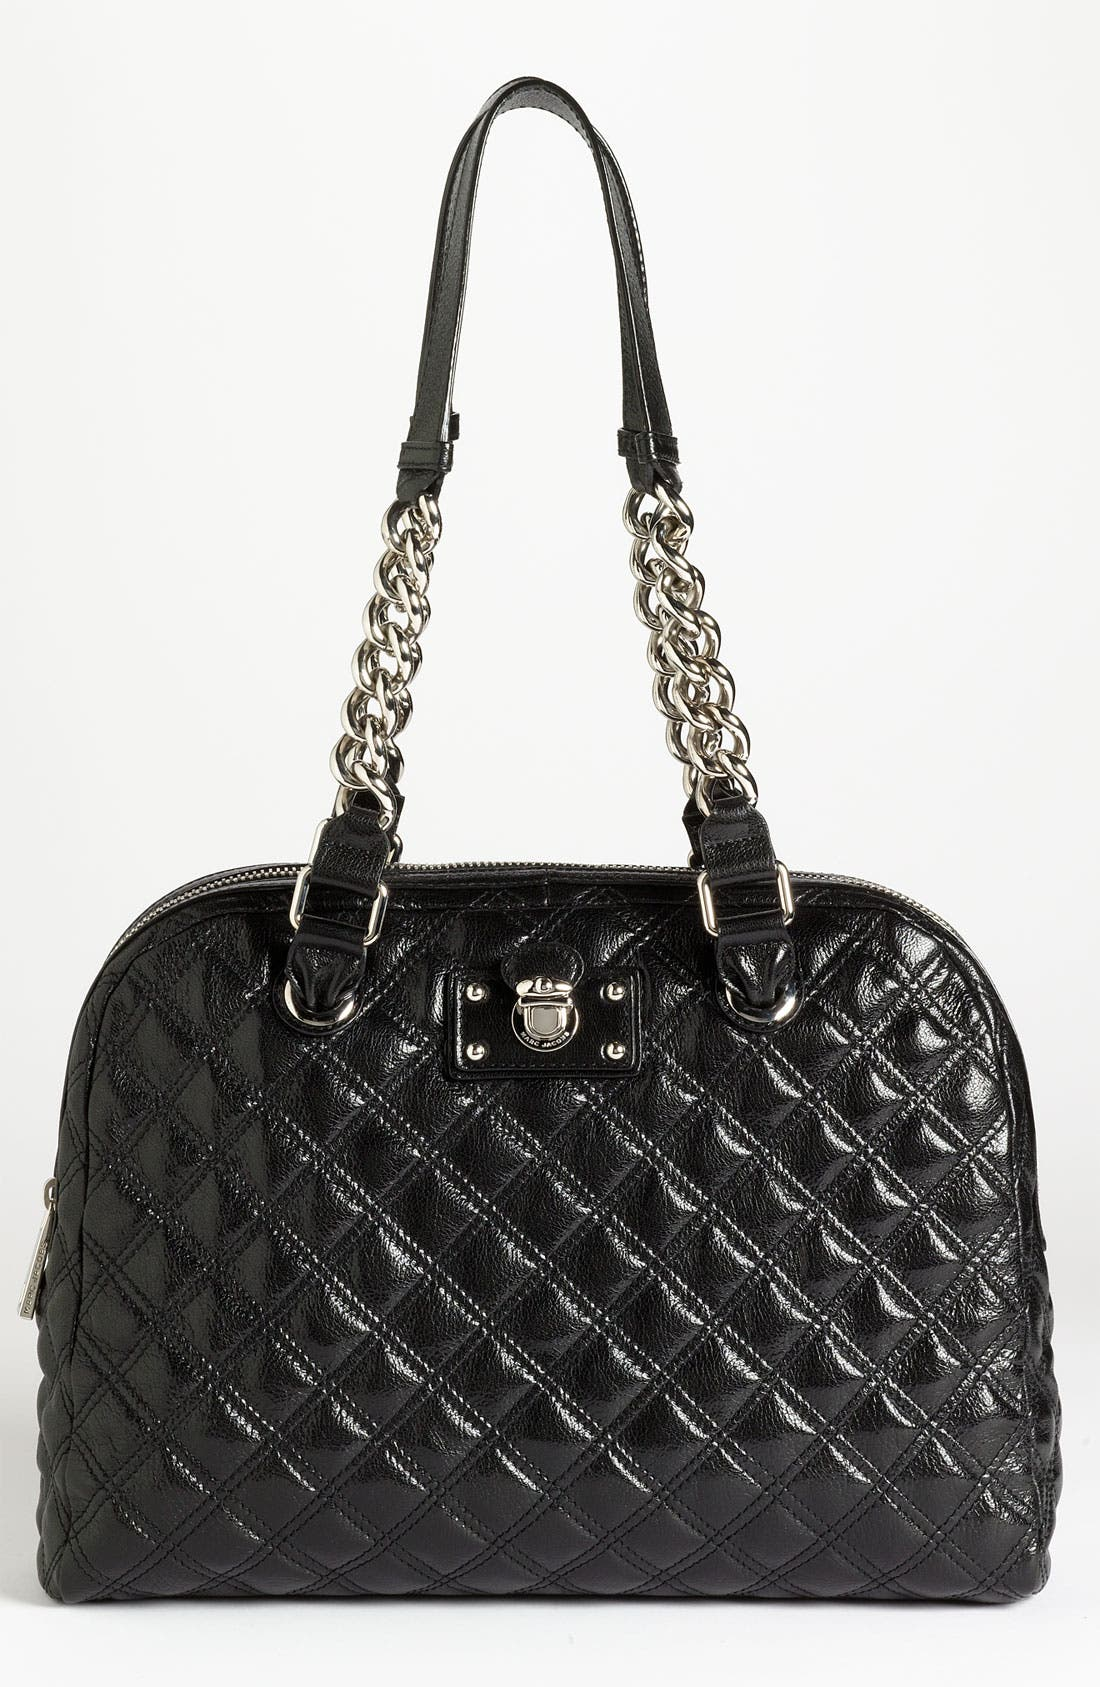 Alternate Image 1 Selected - MARC JACOBS 'Karlie' Leather Shoulder Bag